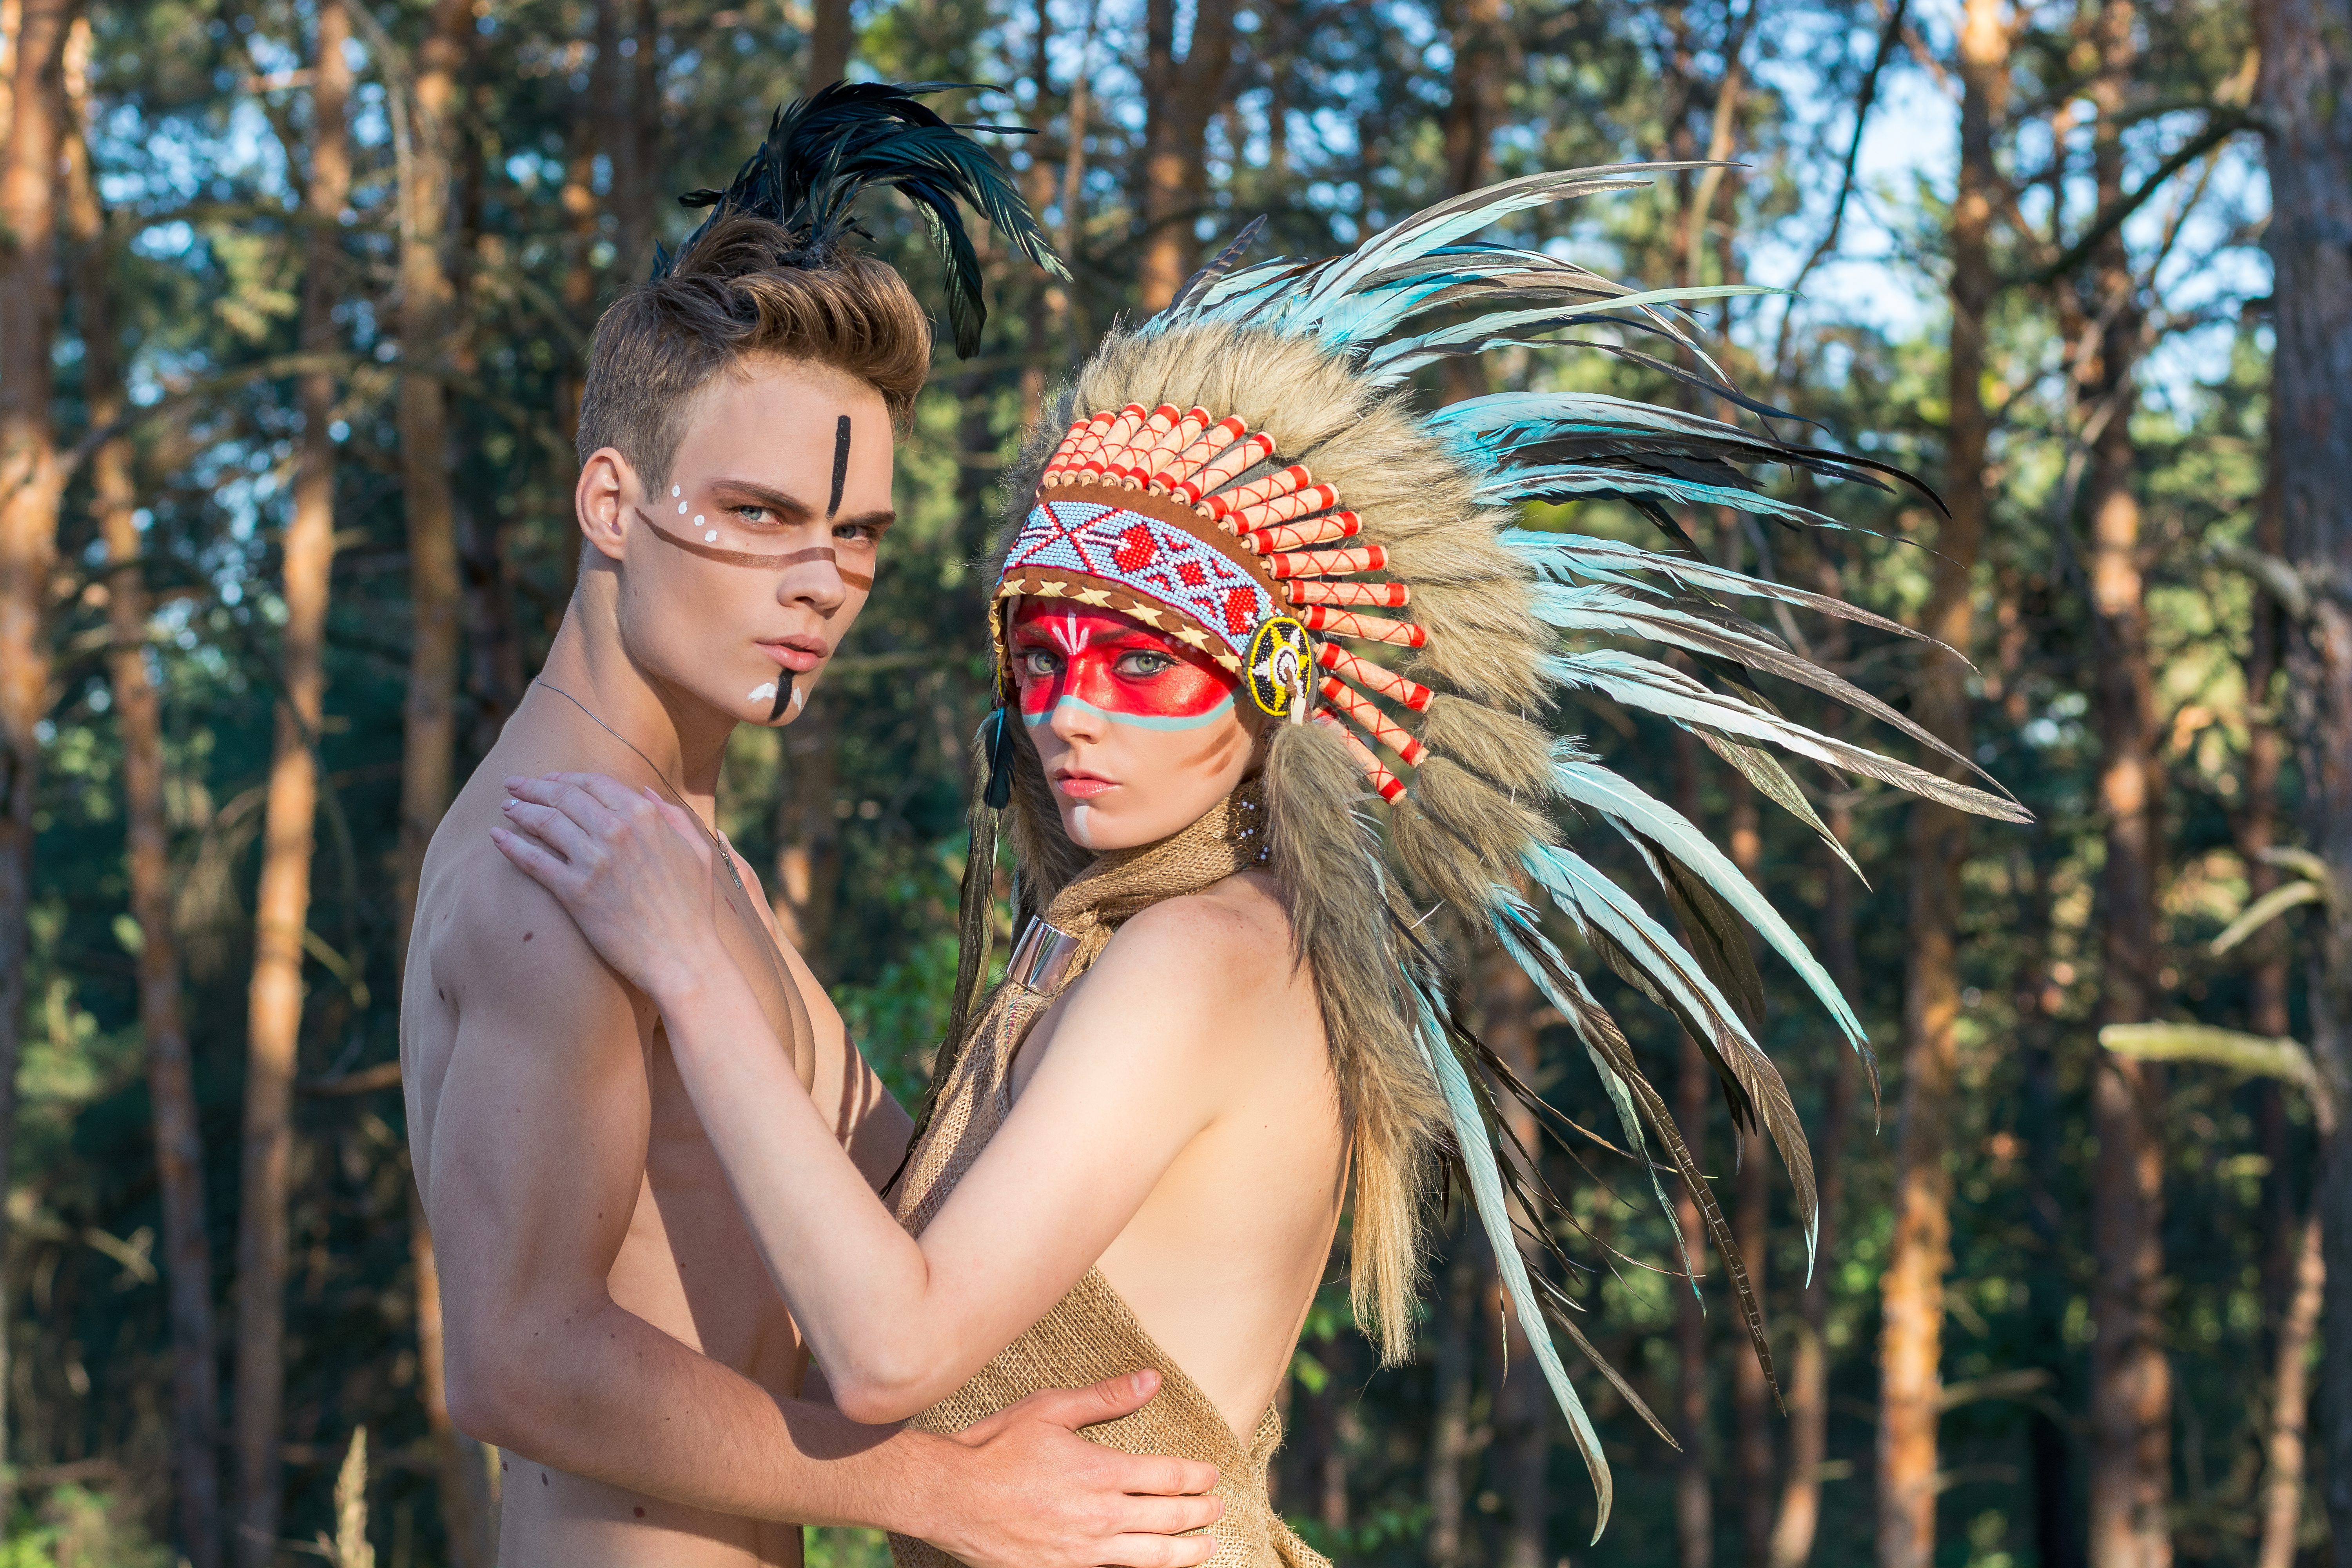 http://o.aolcdn.com/hss/storage/midas/2901793e615f9734824069f4ed0e759/205797657/man-with-an-american-indian-coloring-and-feathers-on-his-head-a-picture-id856966298